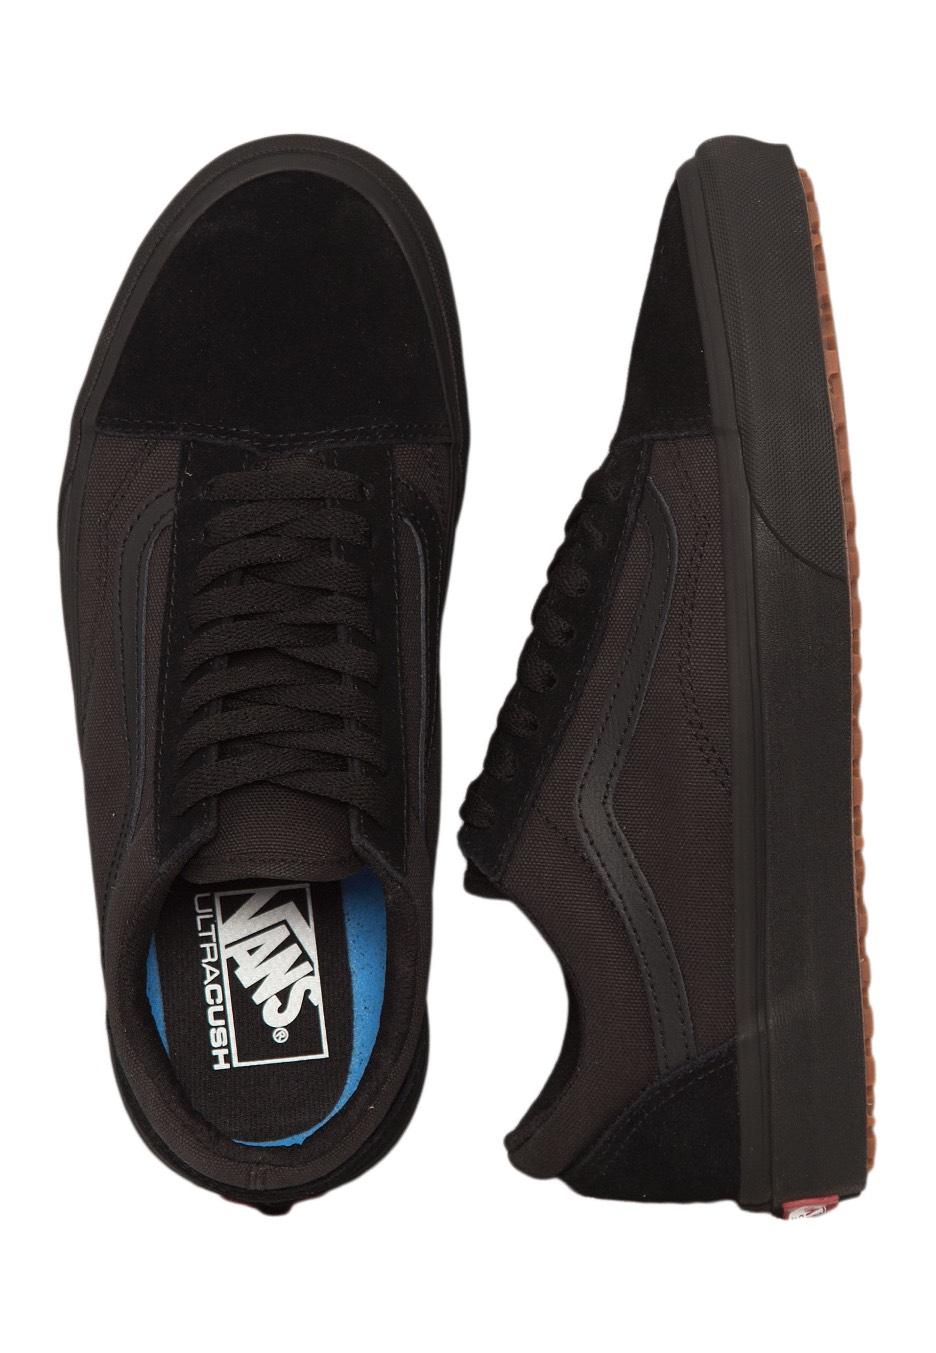 5cea3fd9158 Vans - Old Skool UC Made for the Makers Black Black - Girl Shoes -  Impericon.com UK